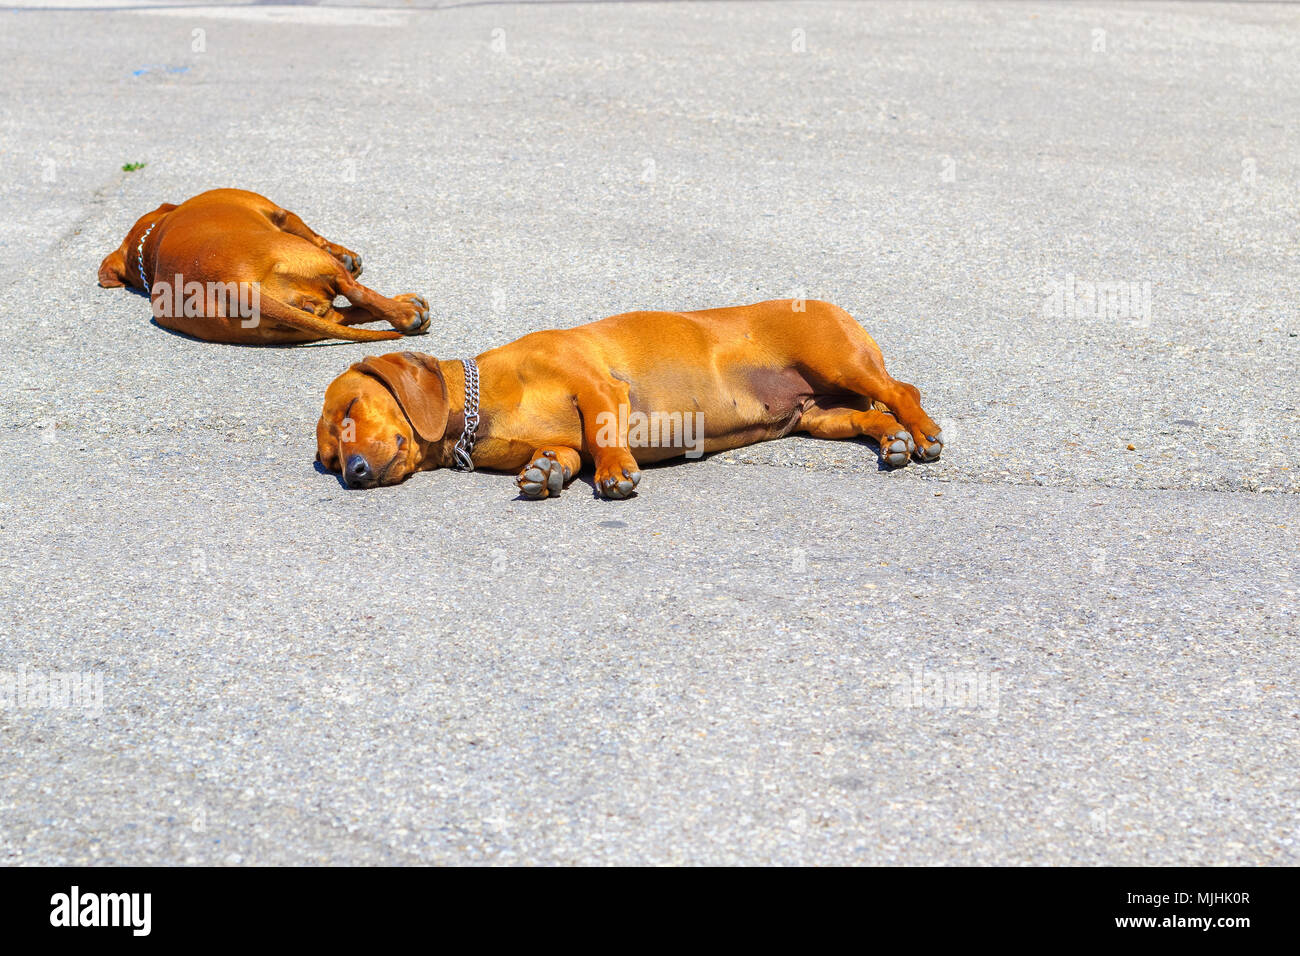 Two dachshund dogs sleep on a tarmac street in hot weather in Pisa, Italy - Stock Image